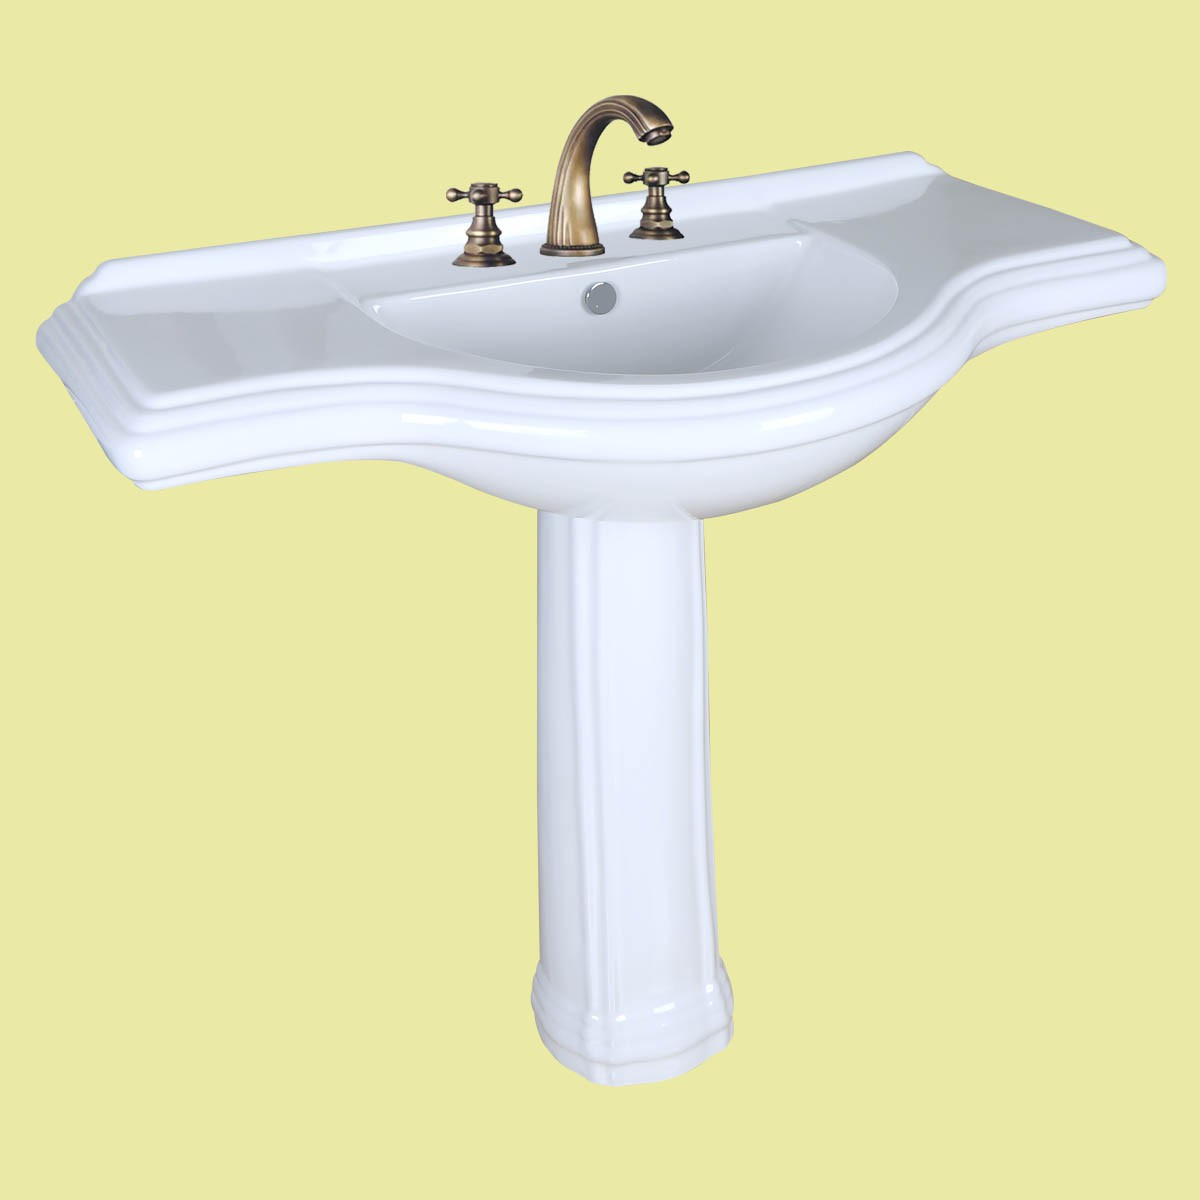 Vintage Pedestal Sink X Large Bathroom Console 8